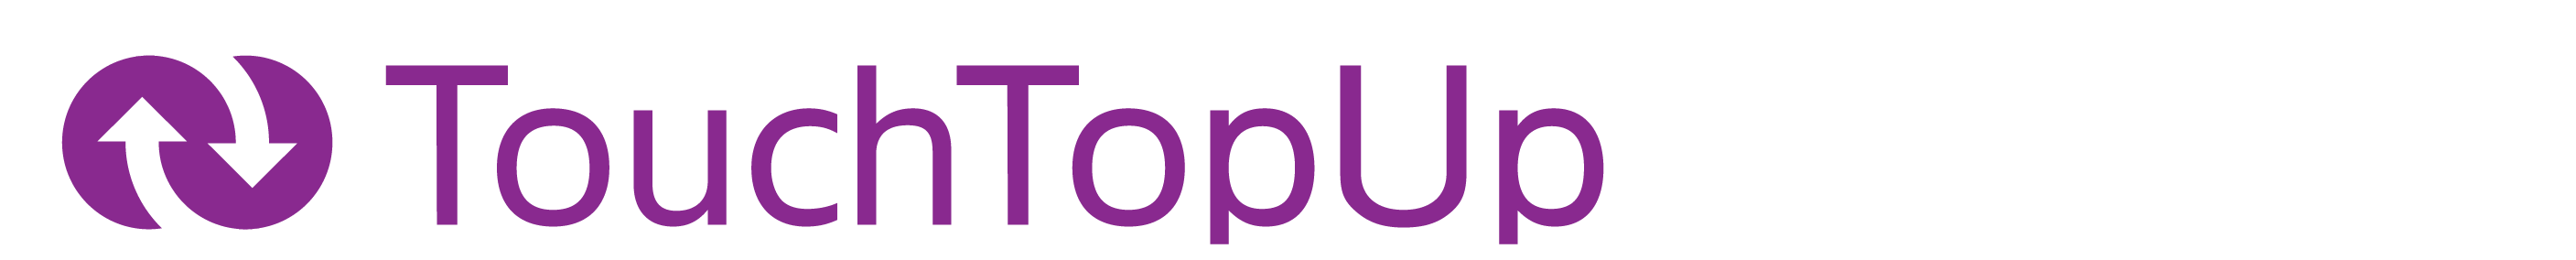 TouchTopUp